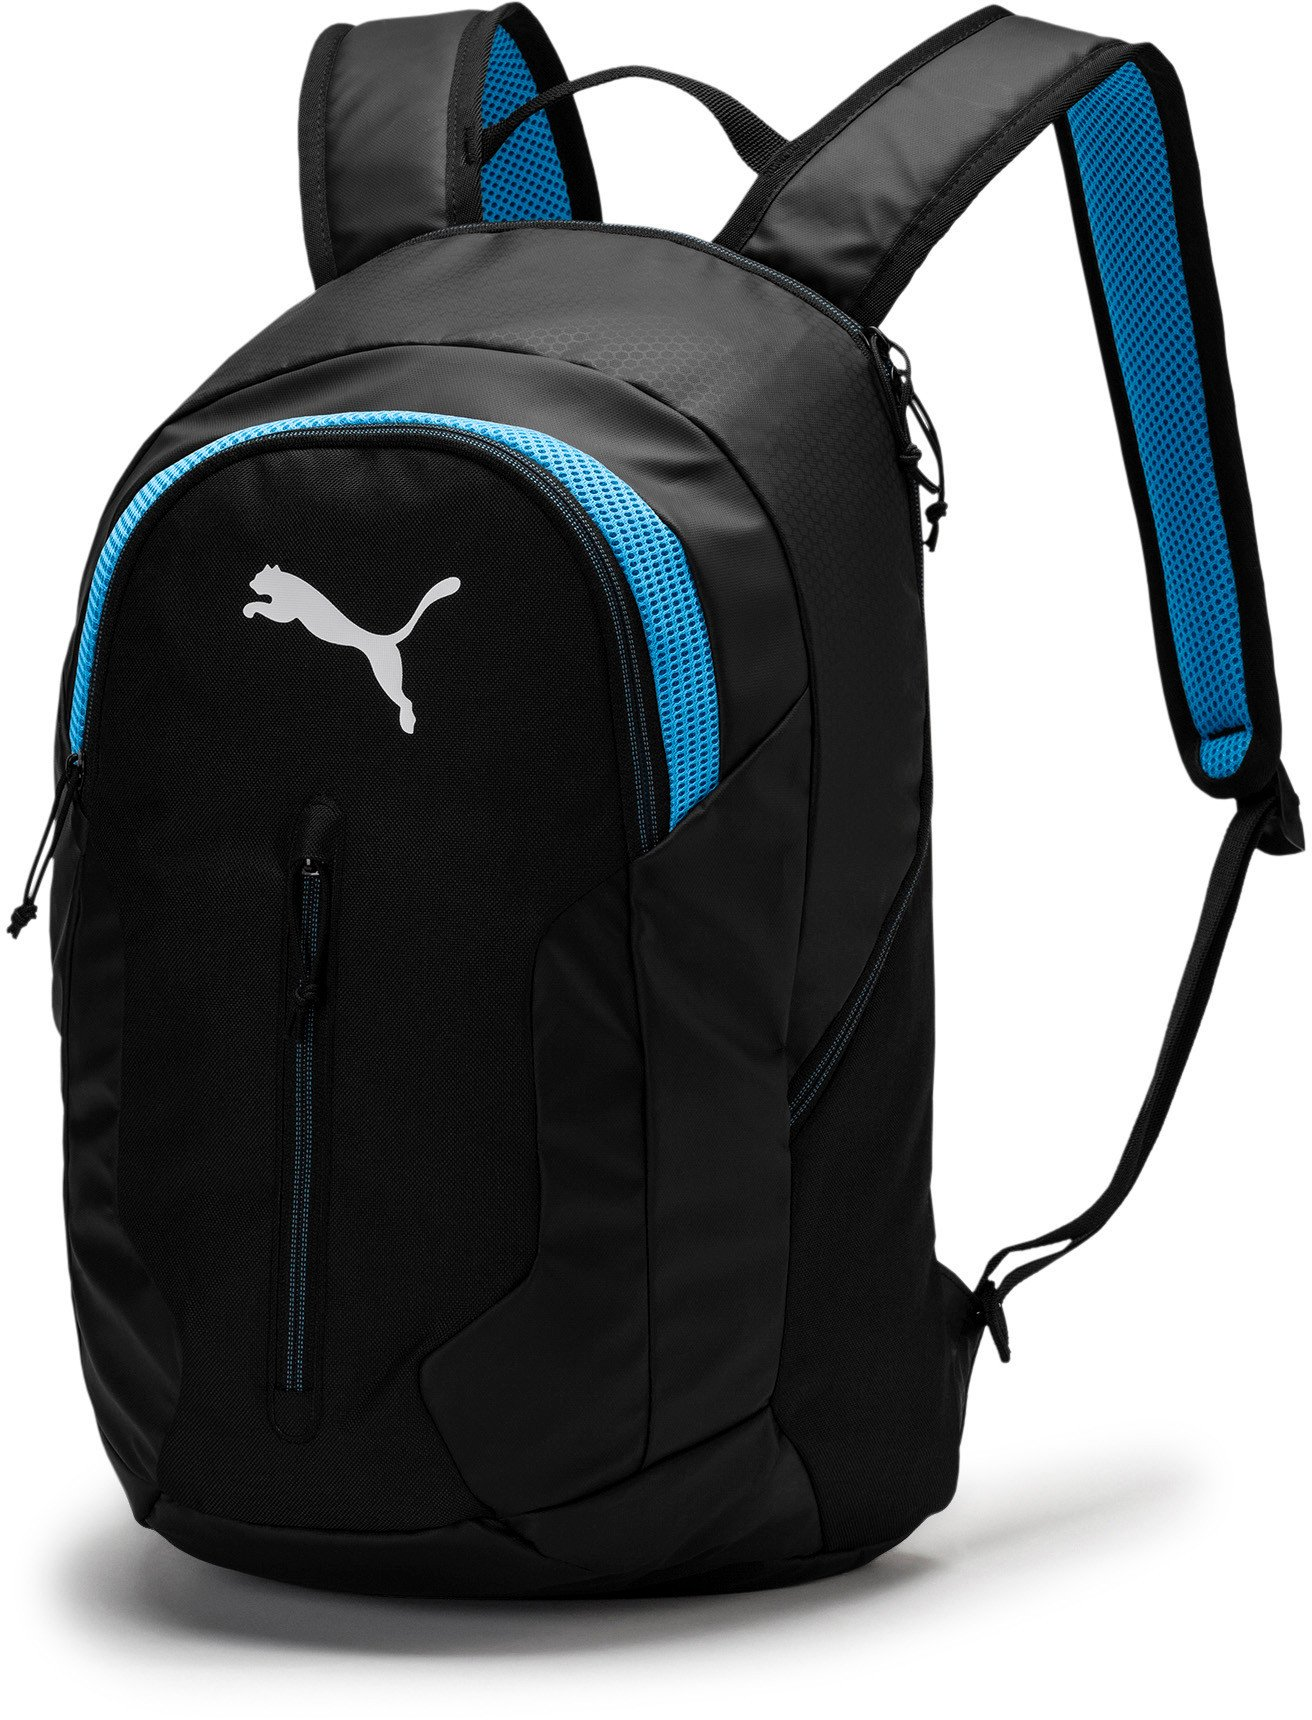 Mochila Puma Final Pro Backpack